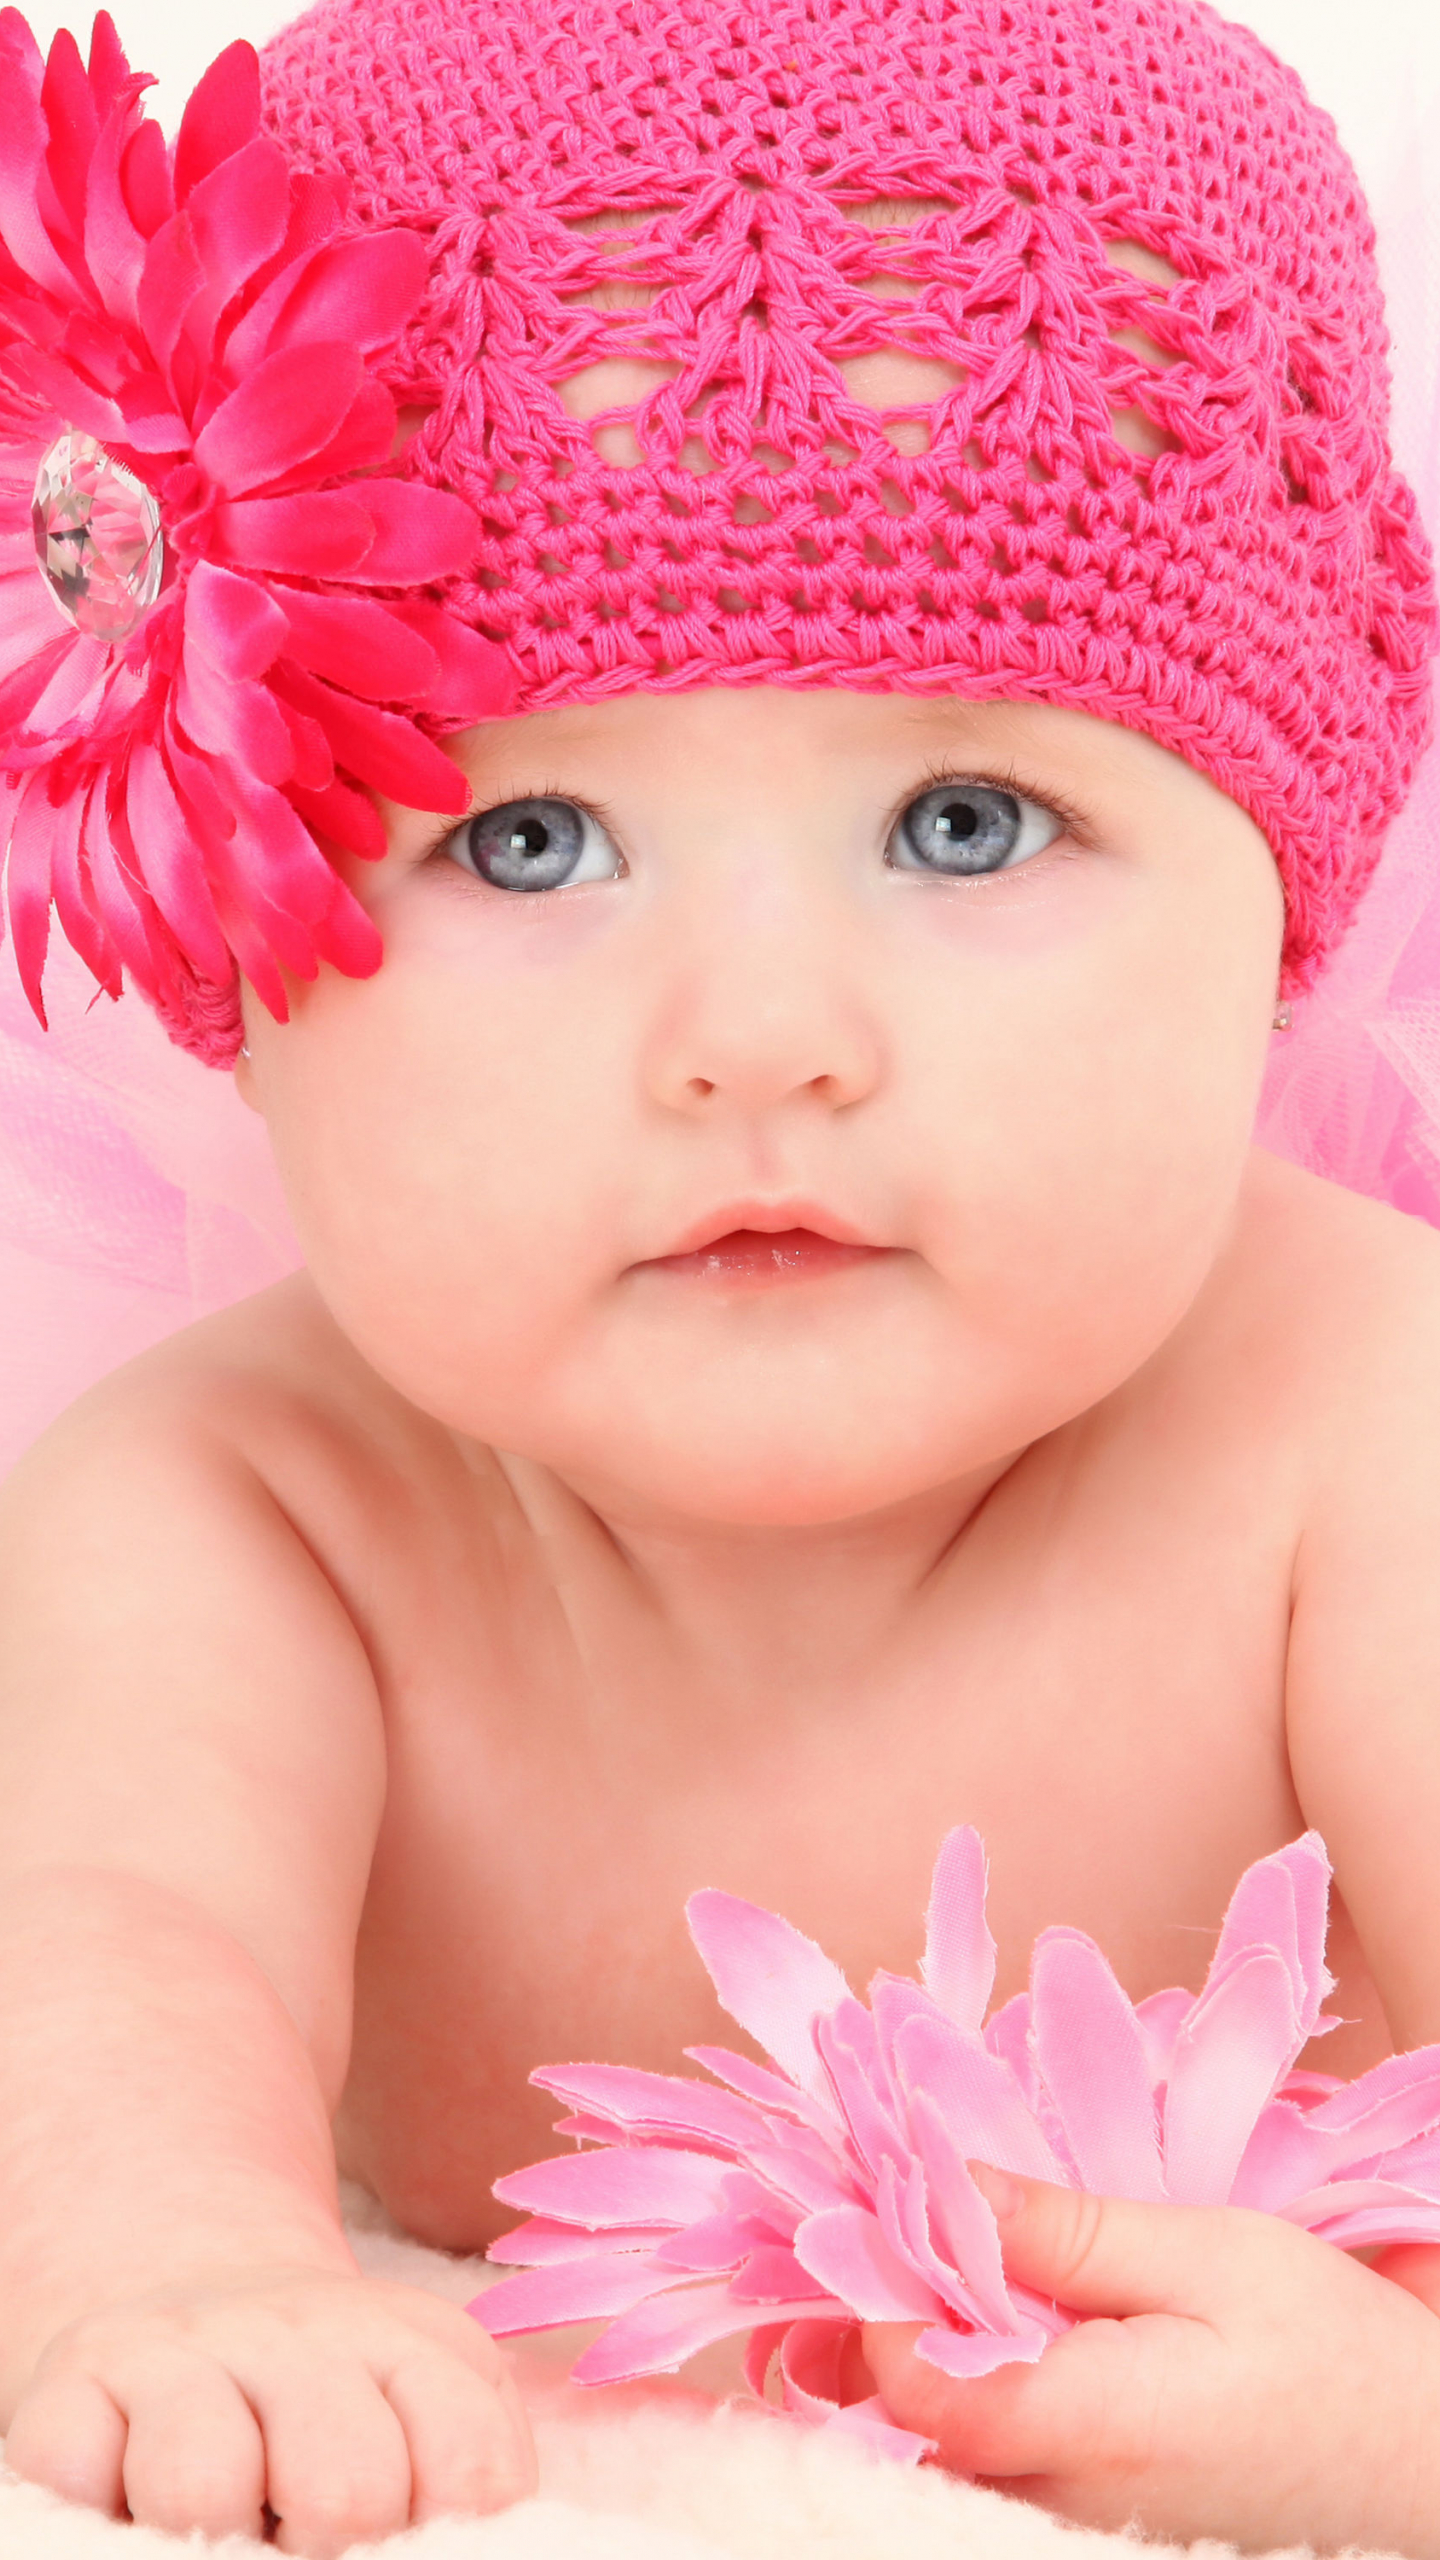 Free Download Lovely Baby Wallpaper Leavase 2000x3000 For Your Desktop Mobile Tablet Explore 76 Wallpaper For Baby Baby Boy Nursery Wallpaper Baby Girl Room Wallpaper Free Baby Wallpaper For Desktop